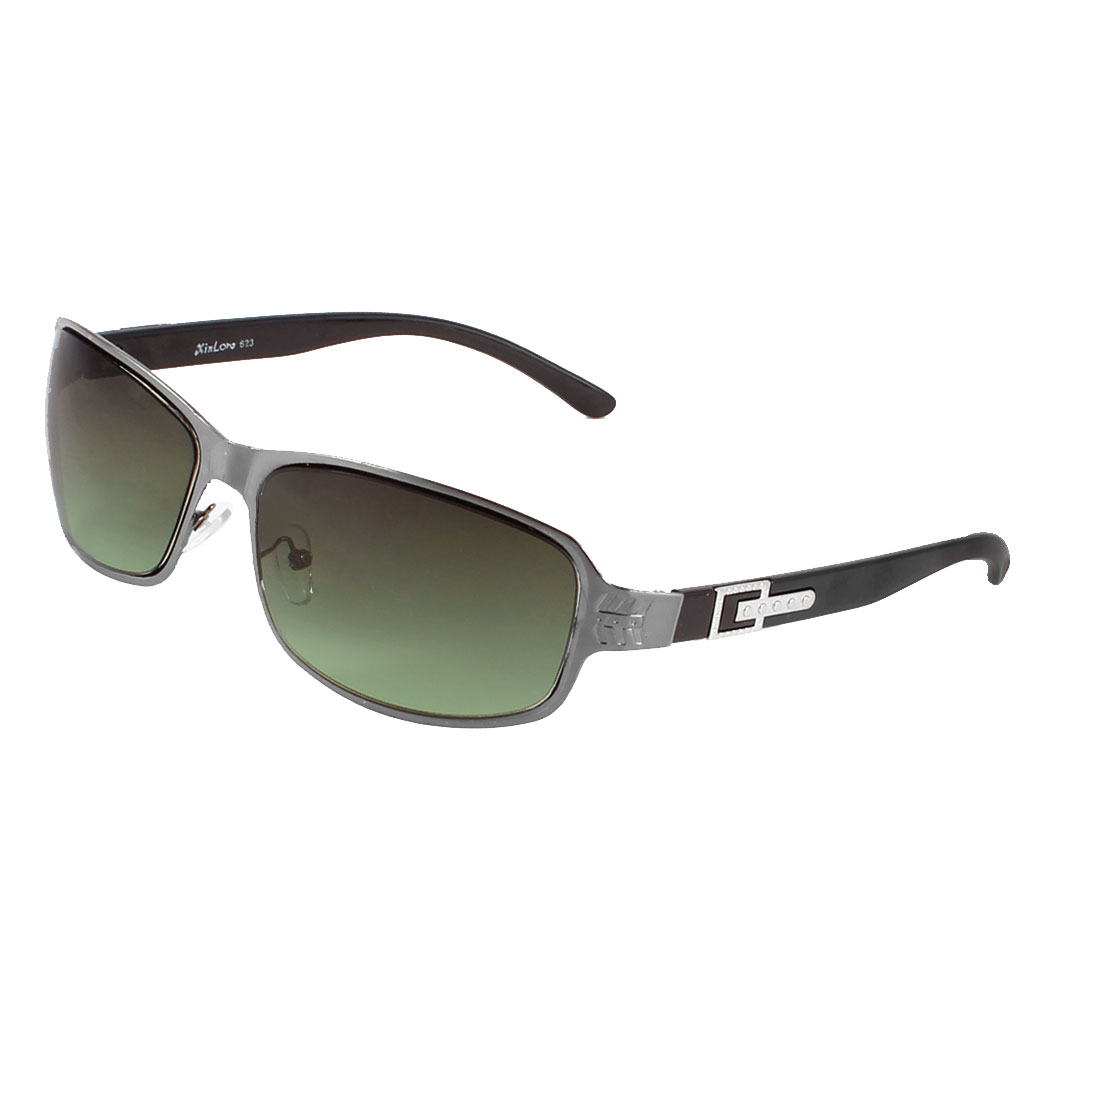 Man Outdoor Rectangle Clear Amry Green Lens Black Full Rims Sunglasses